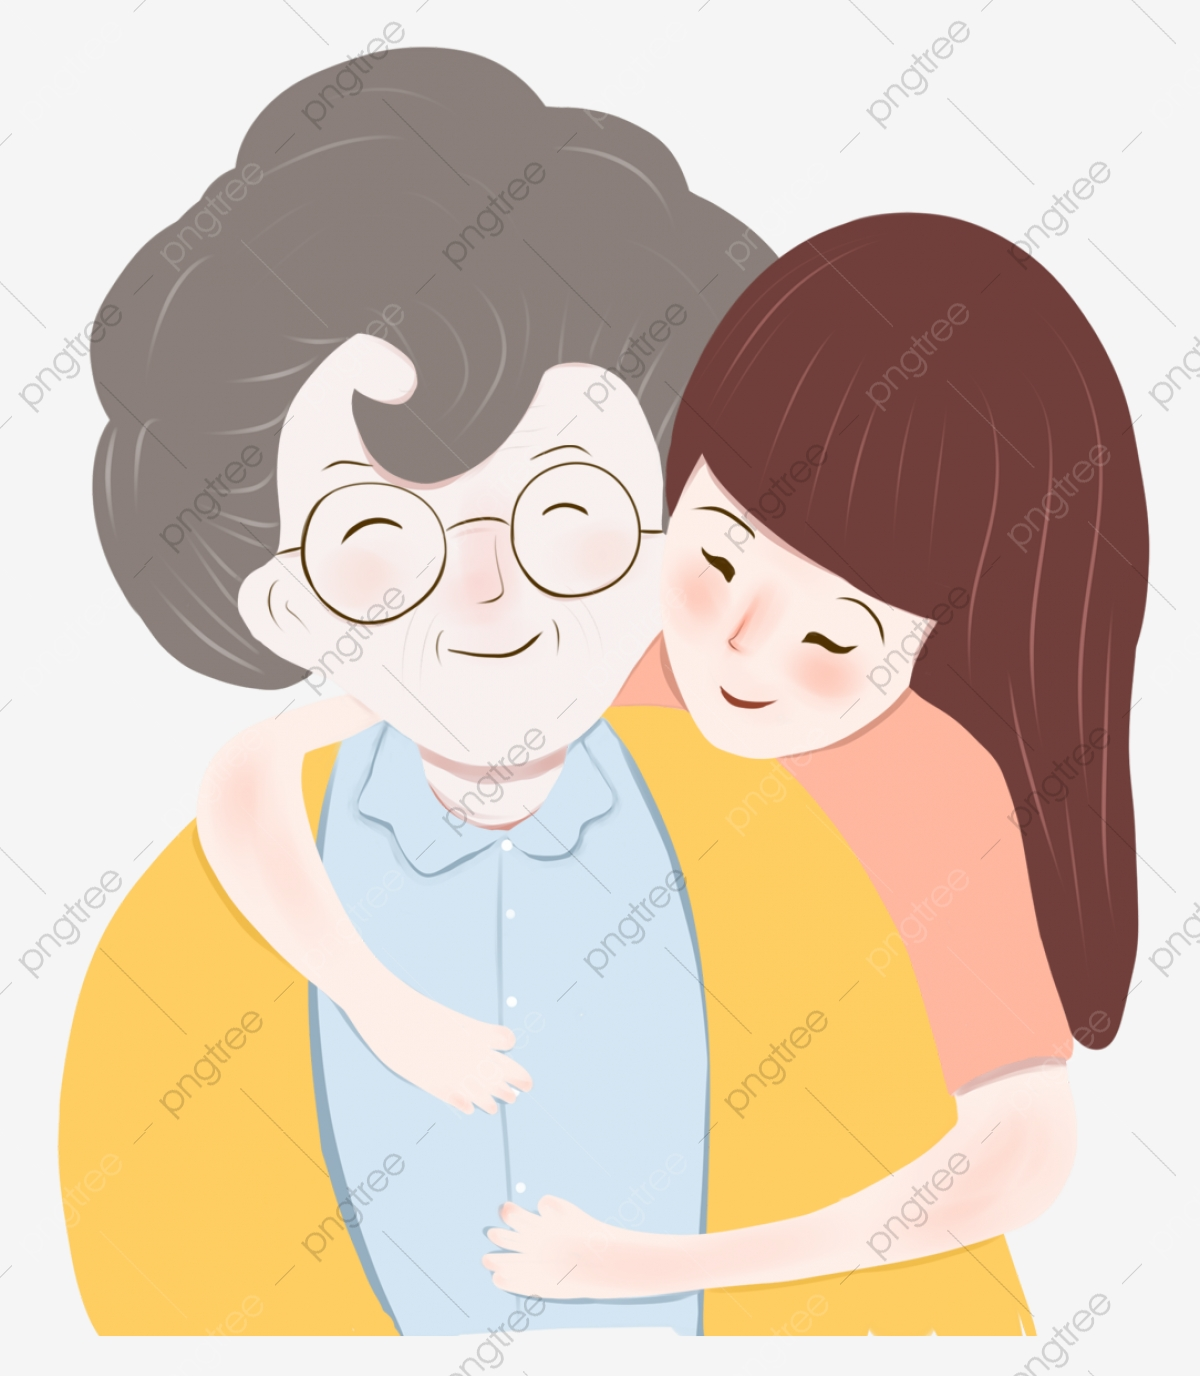 Hug Vector PSD And Clipart With Transparent